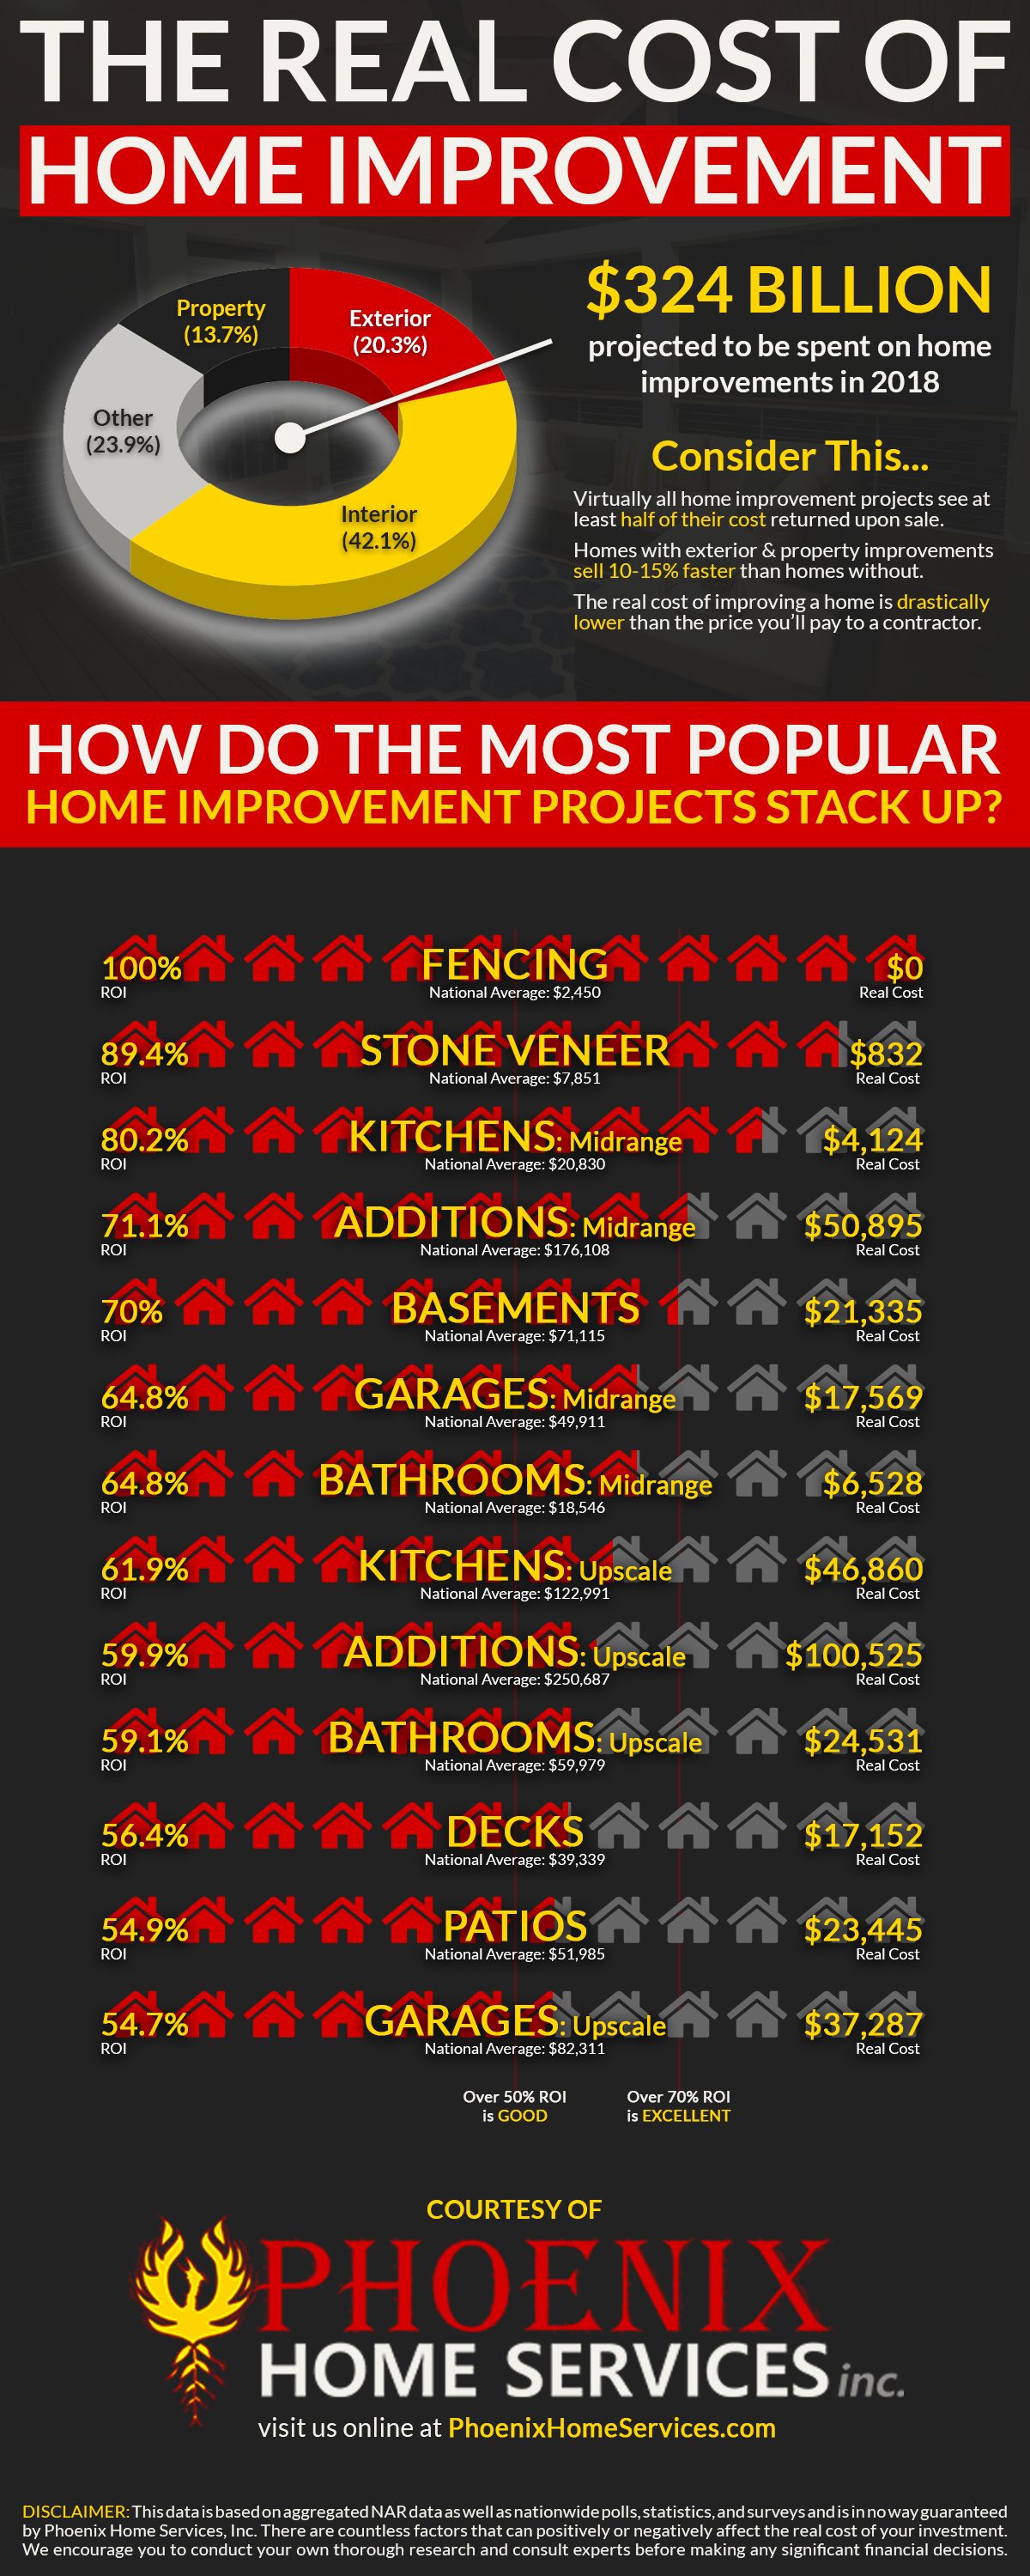 The Real Cost of Home Improvement